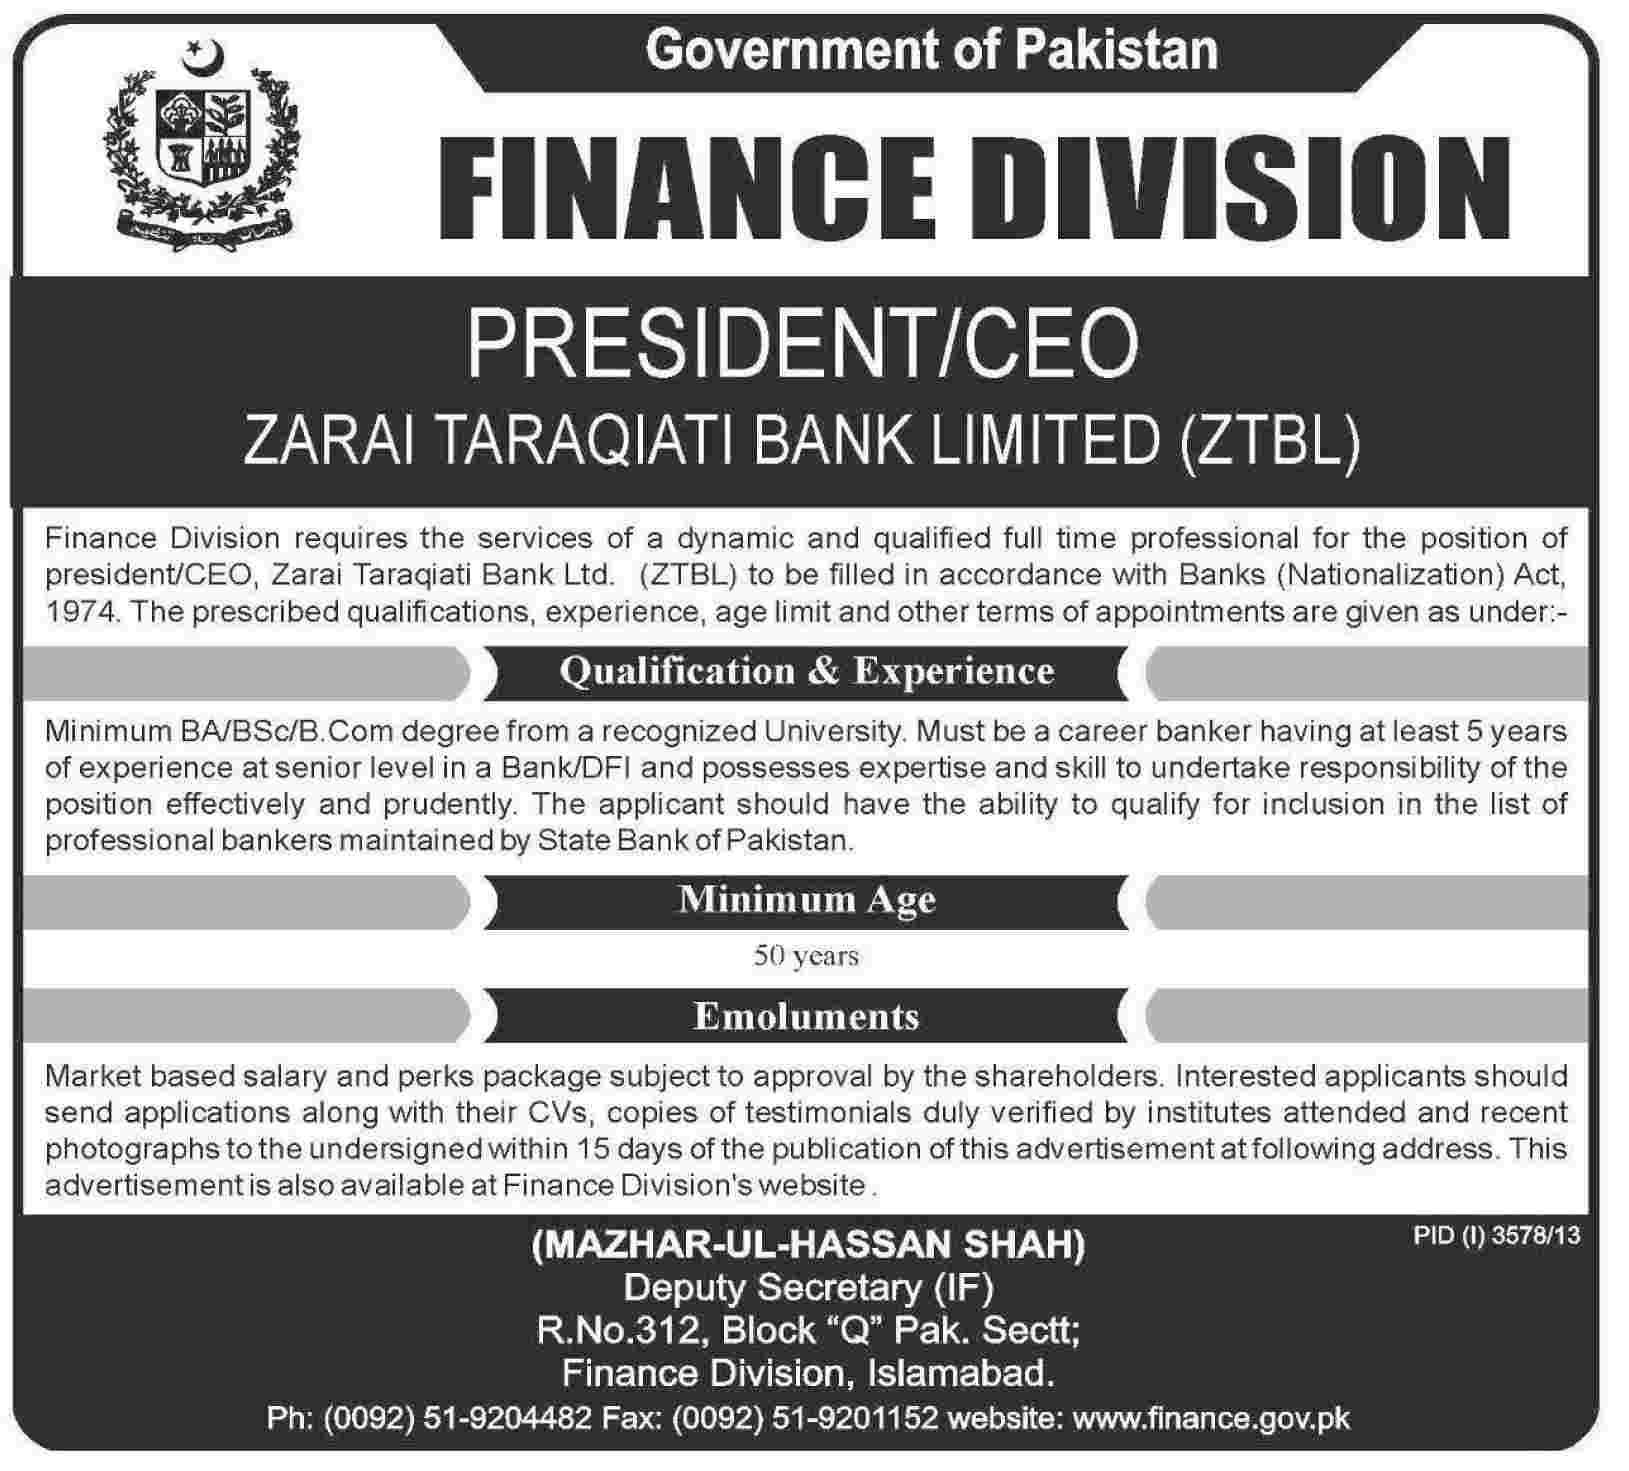 ztbl required president ceo zarai tarakiati bank limited ztbl ztbl required president ceo